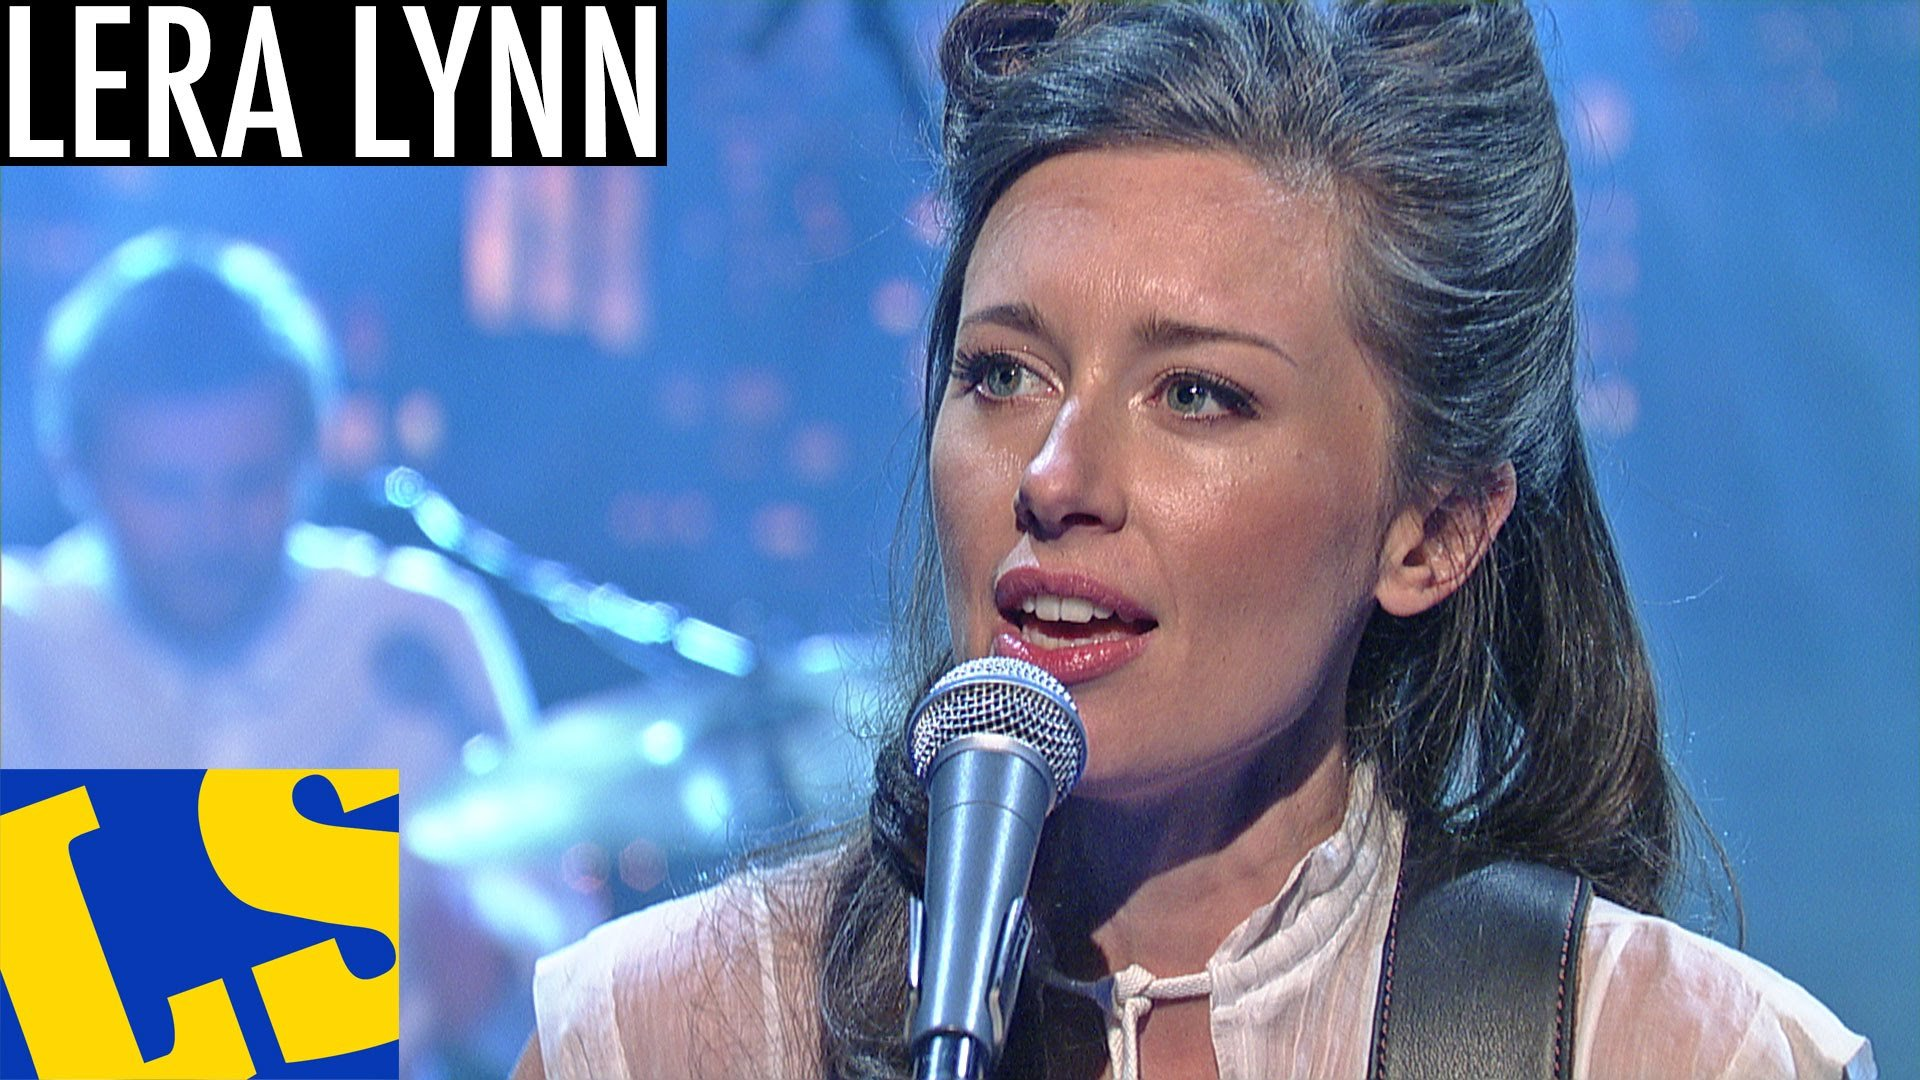 Lera Lynn performs 'Out to Sea' on the 'Late Show with David Letterman'